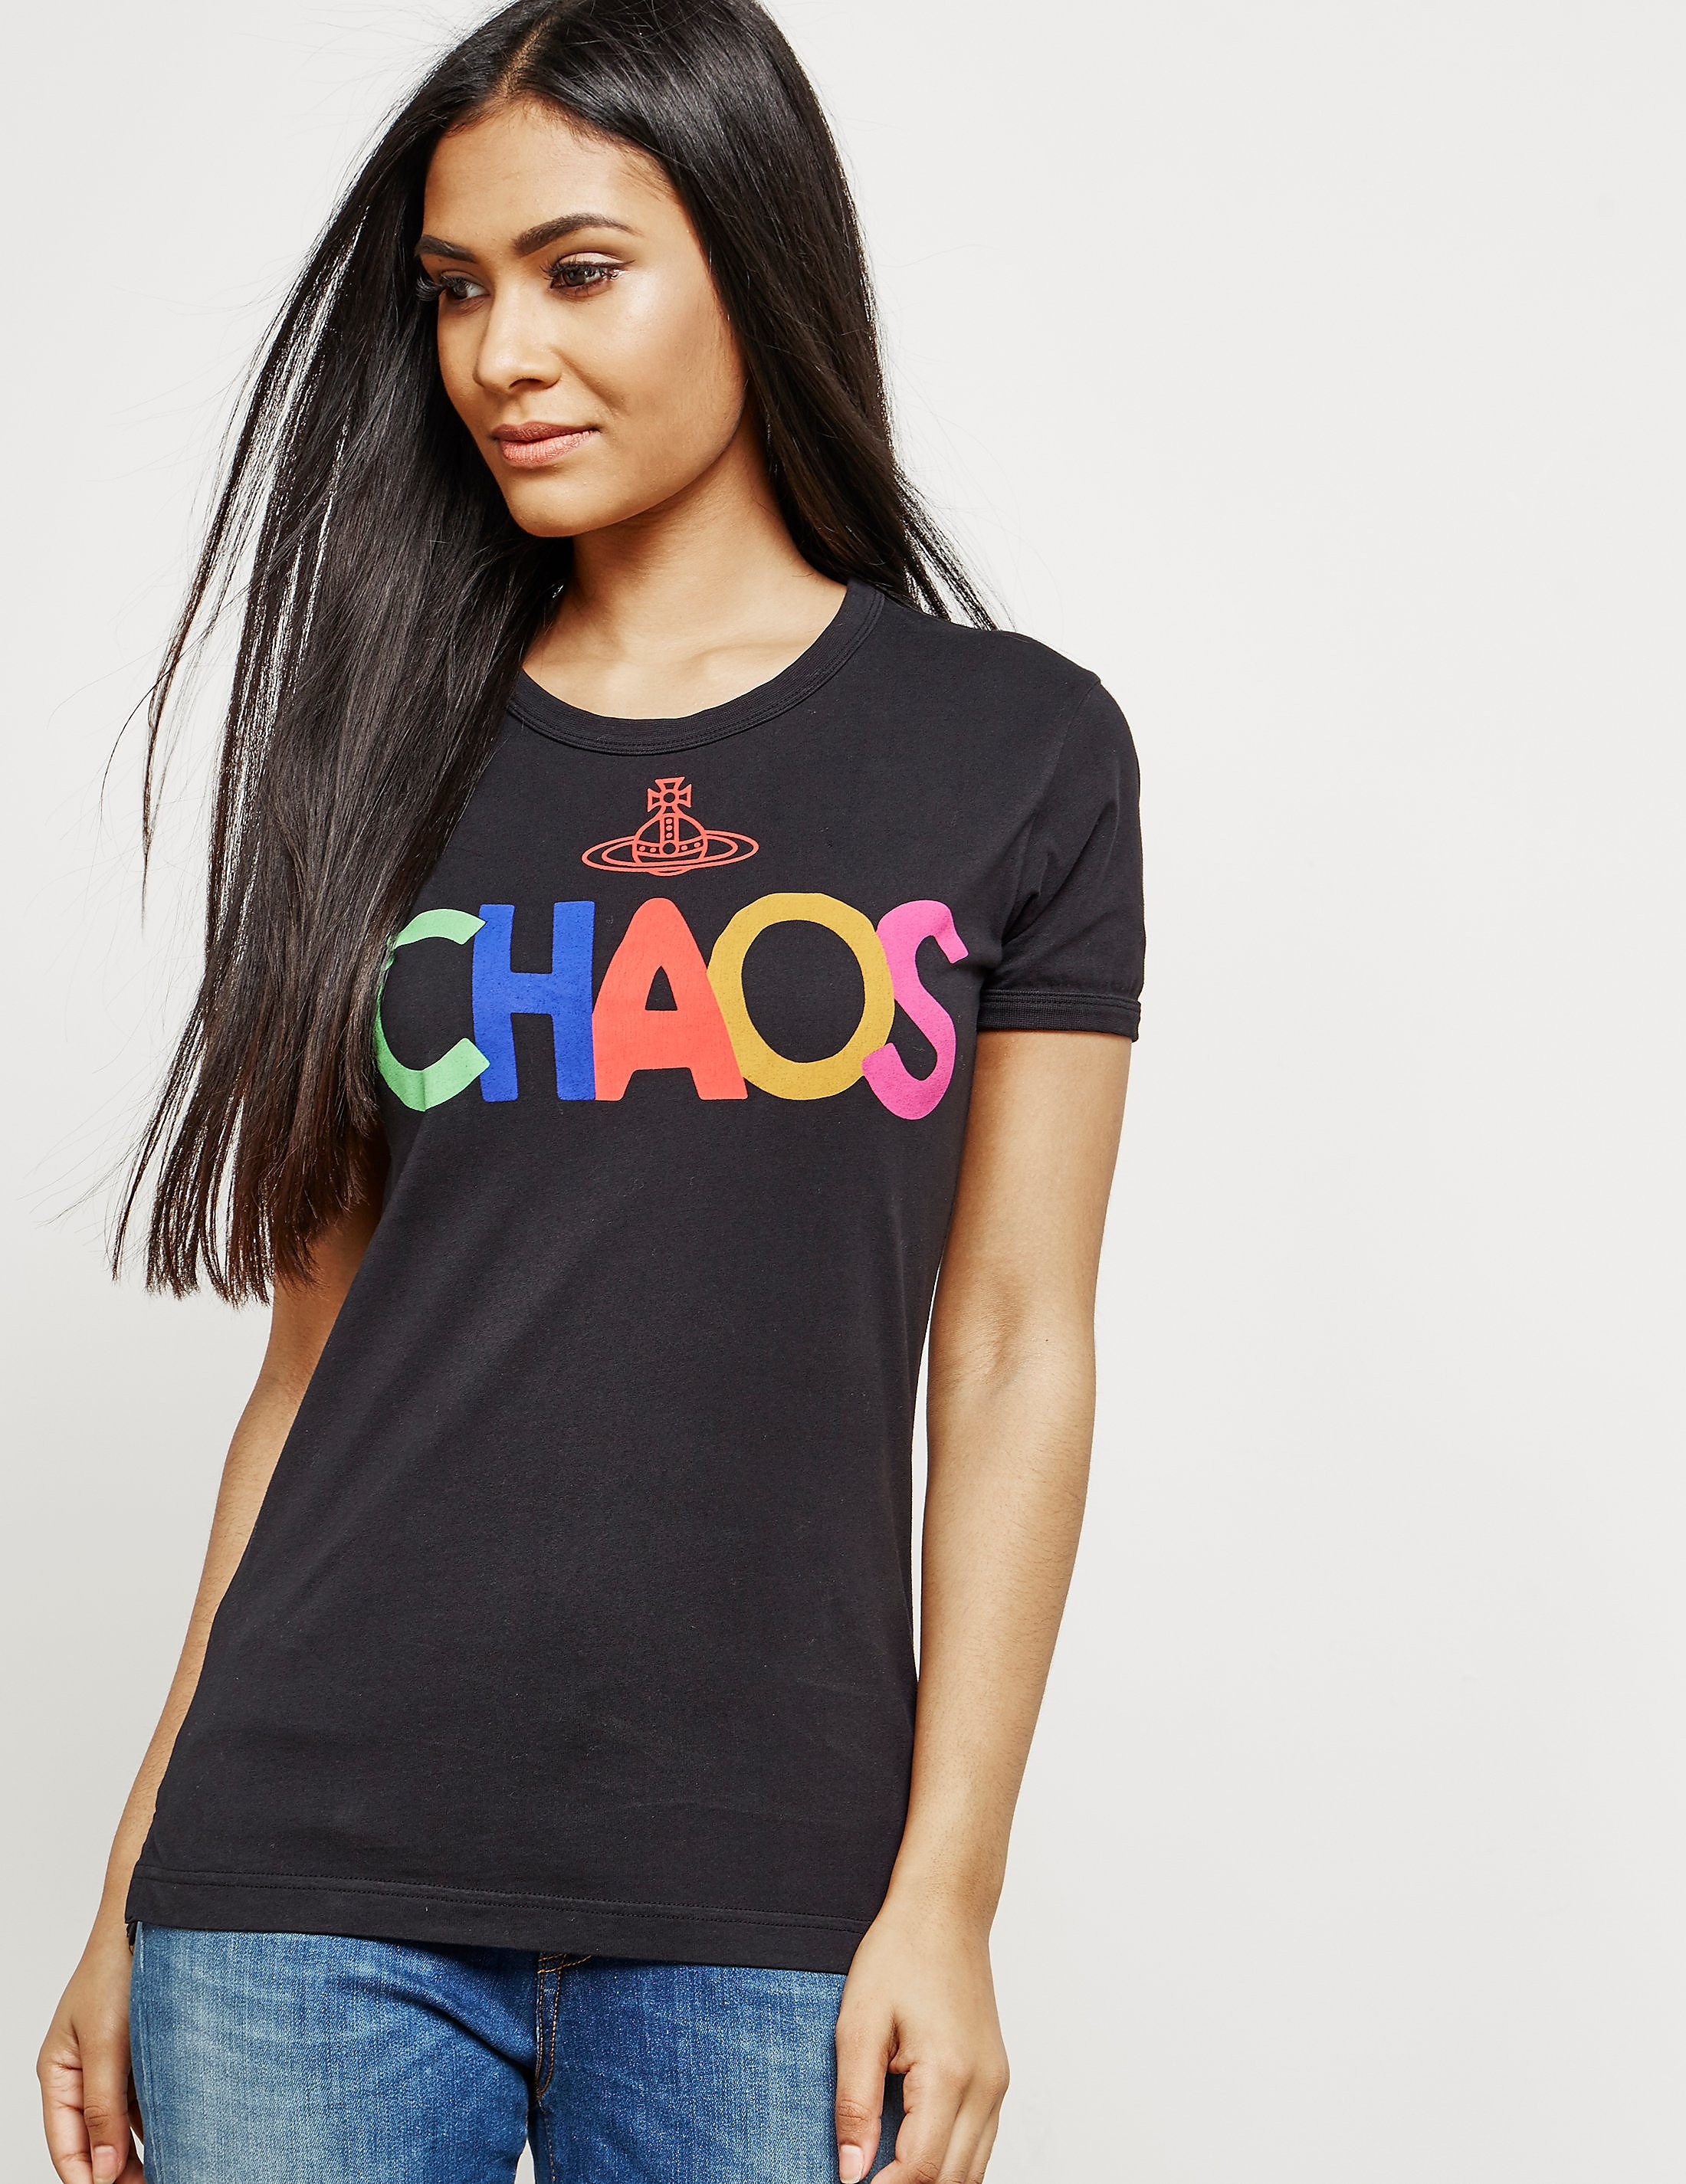 Vivienne Westwood Choas Orb Short Sleeve T-Shirt